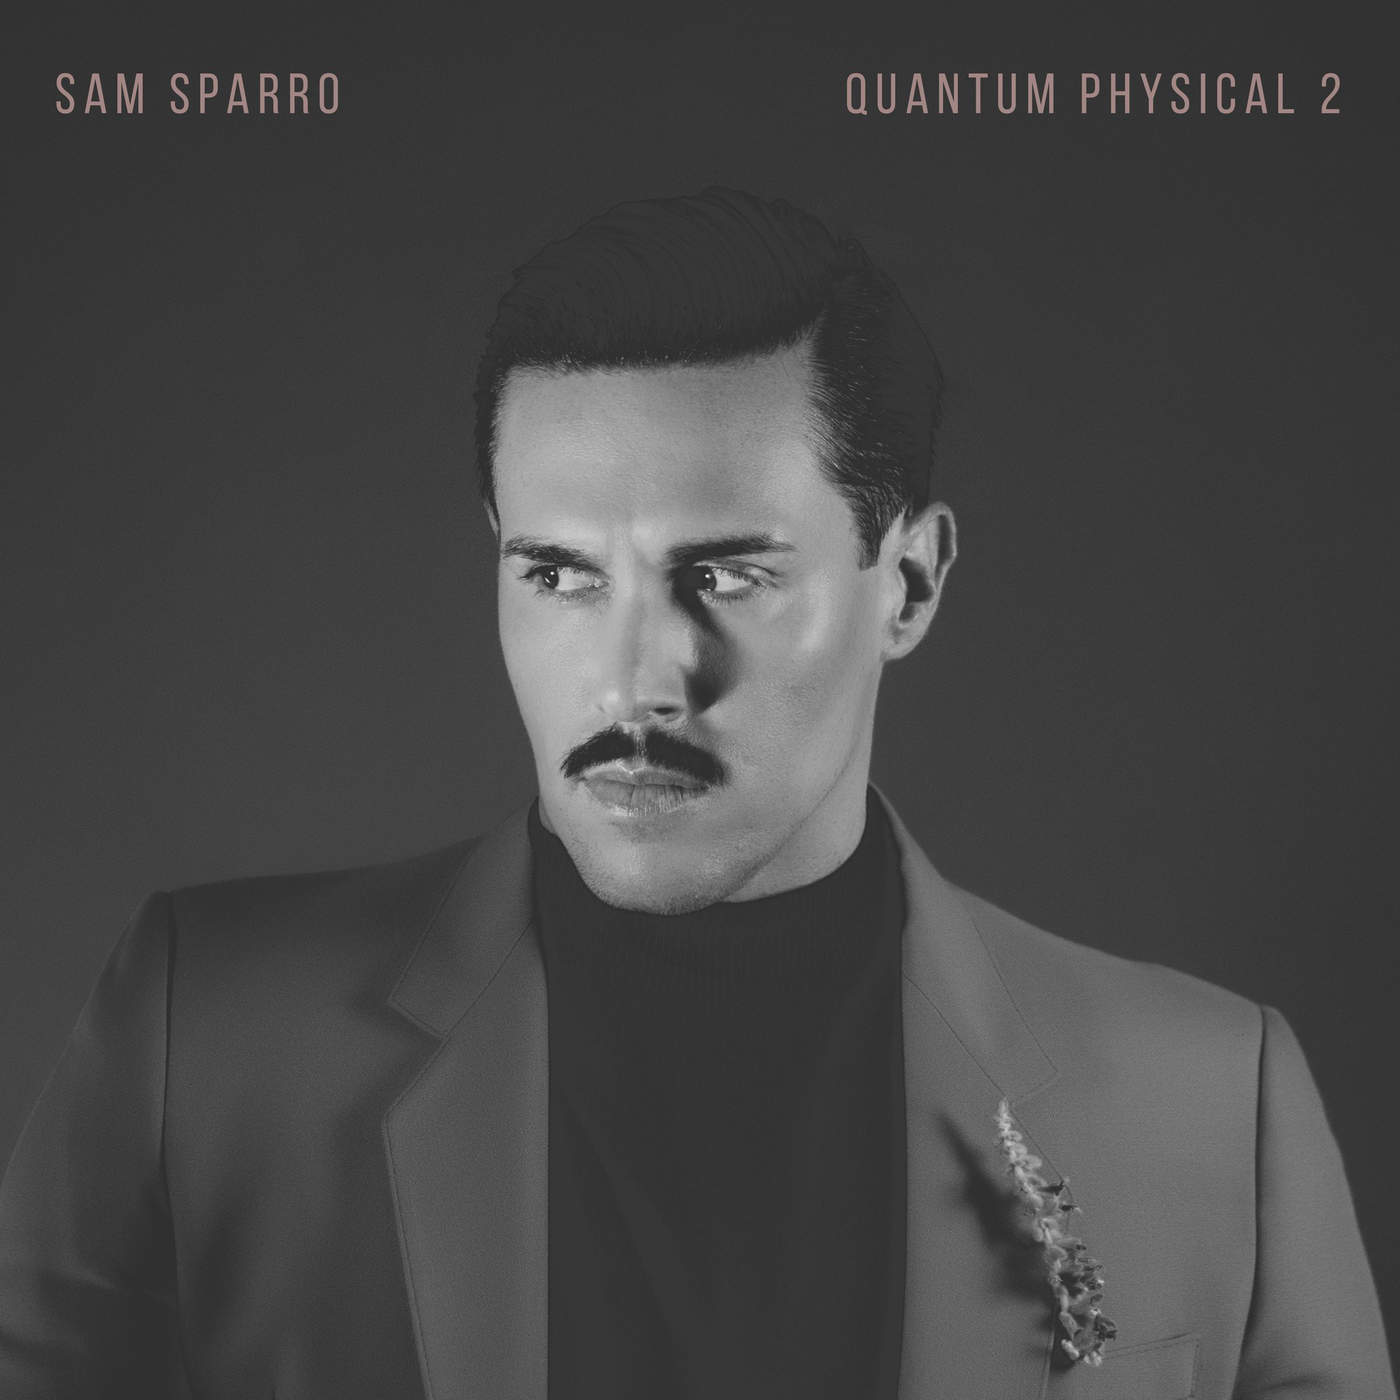 Art for In Your Heaven by Sam Sparro